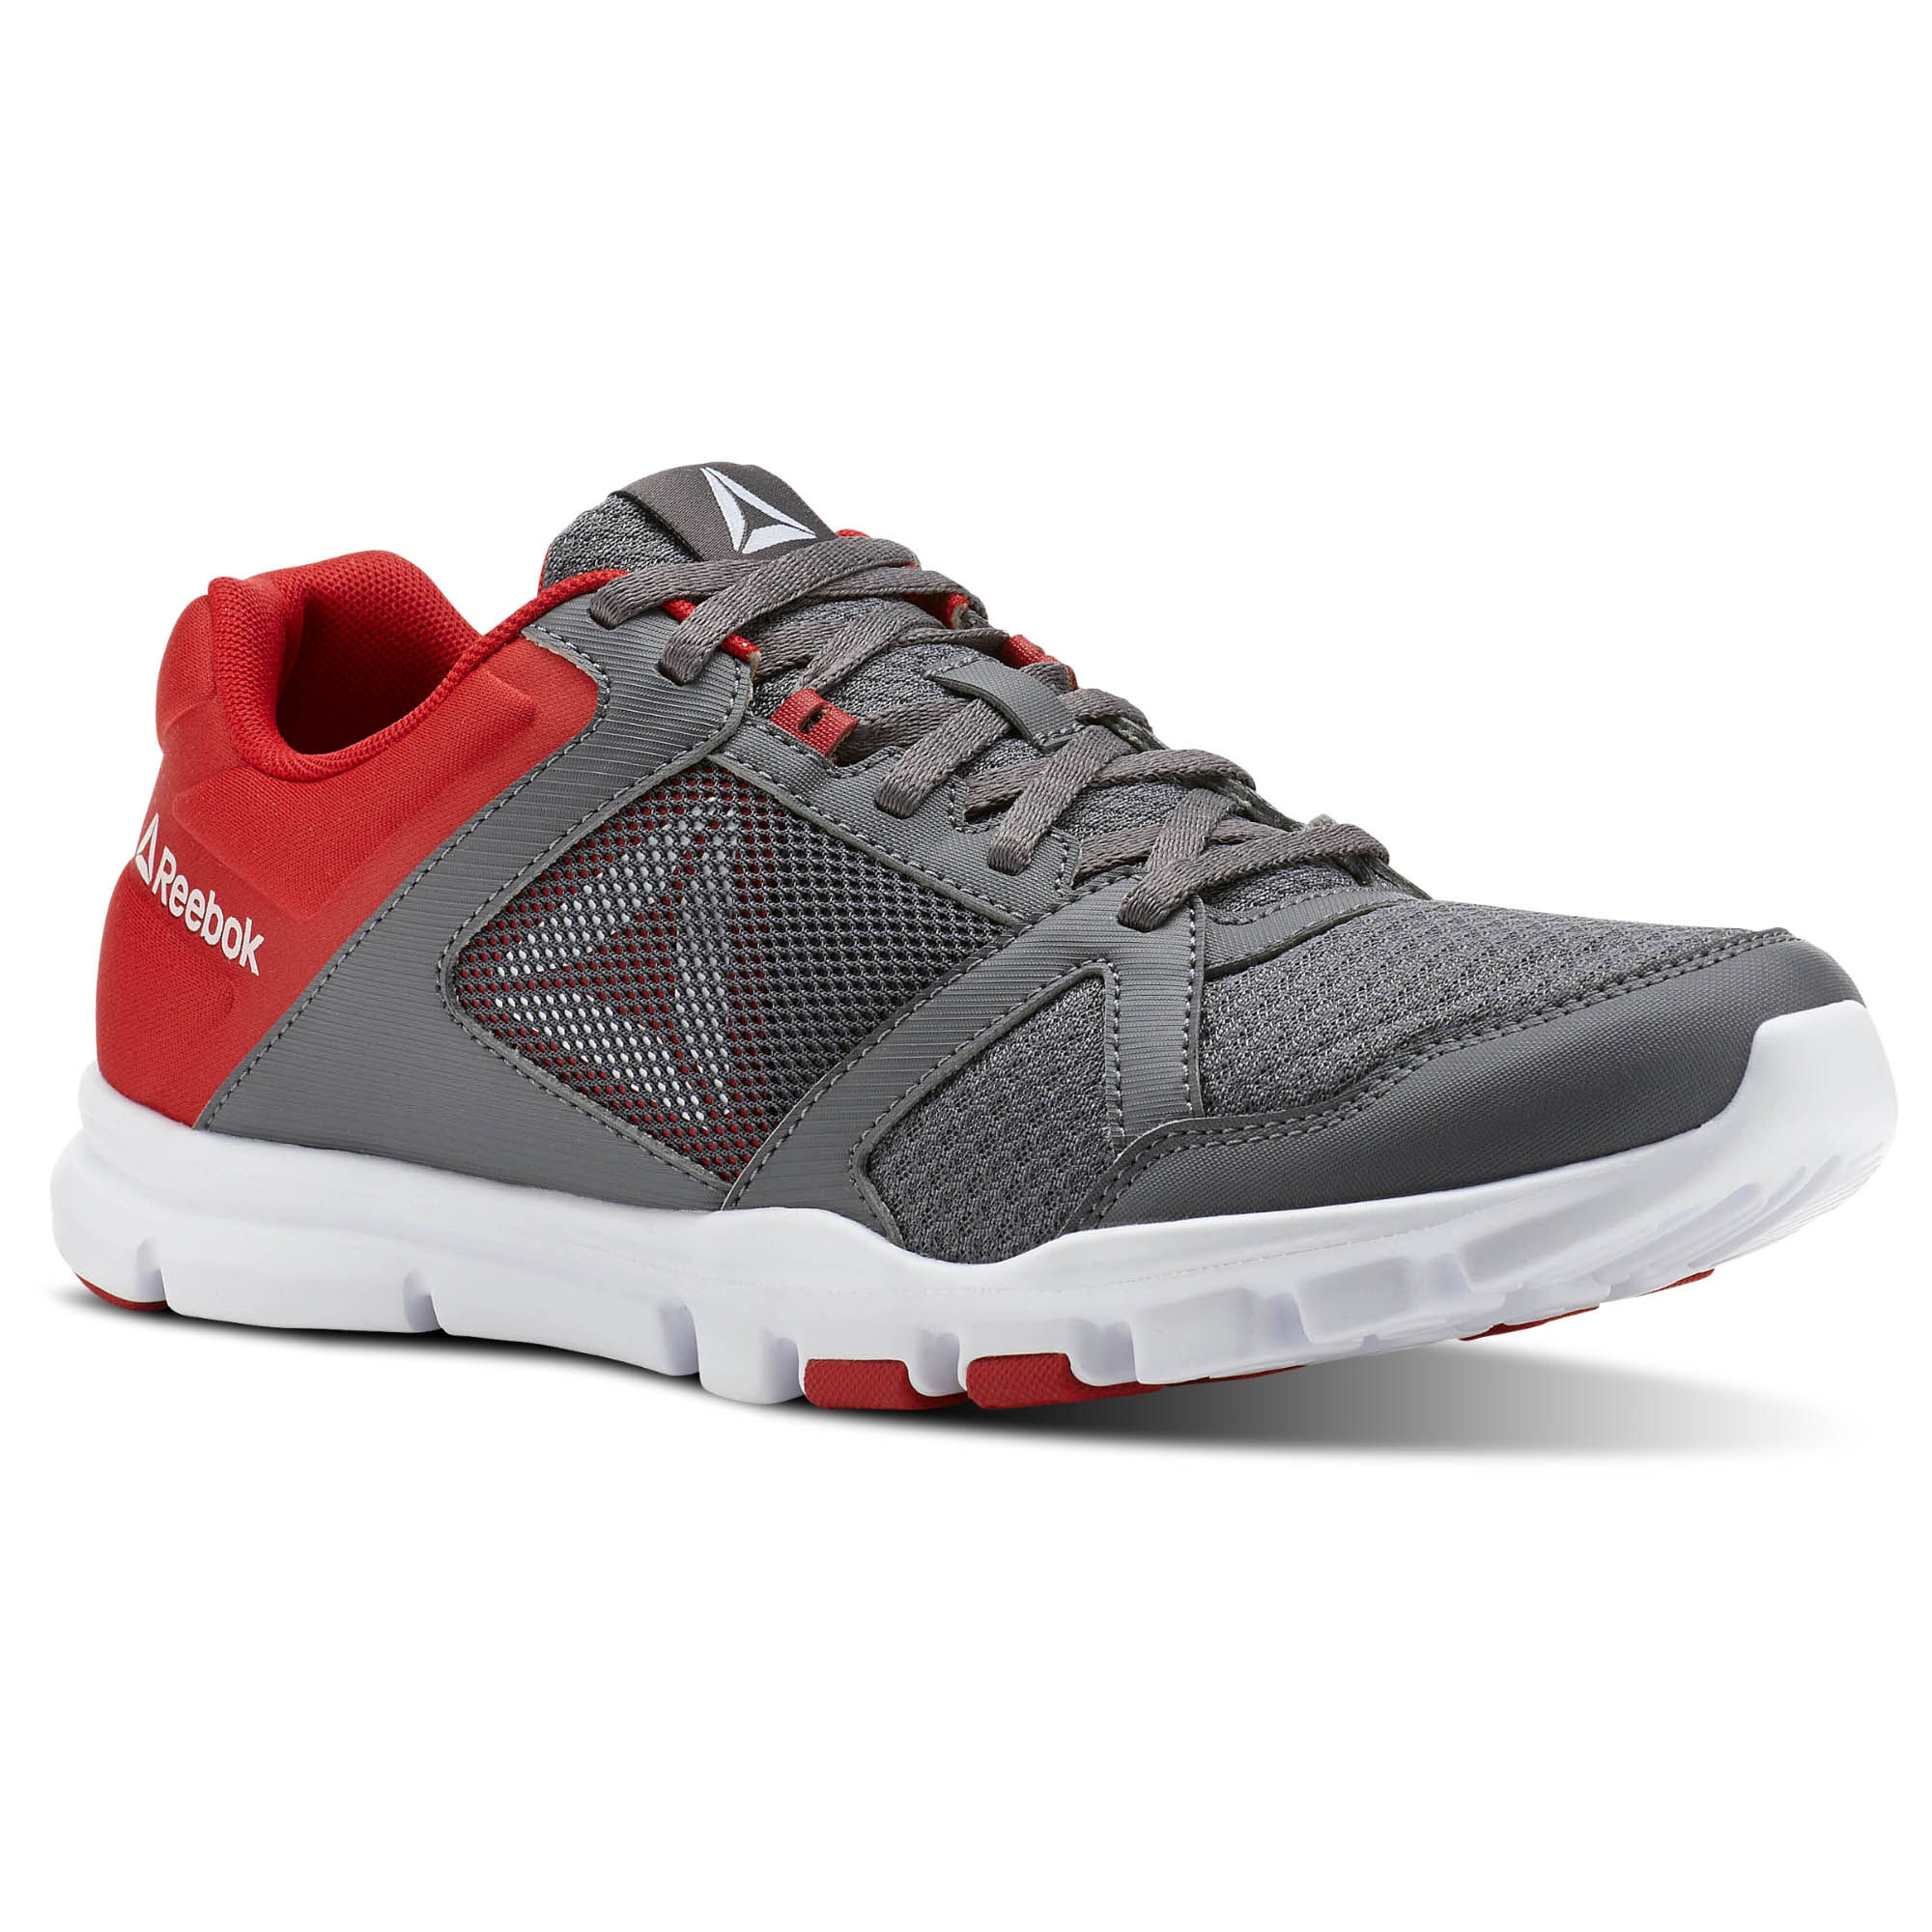 Reebok YOURFLEX TRAIN 10 MT - Sports shoes - shark/primal red/white h4gb1A